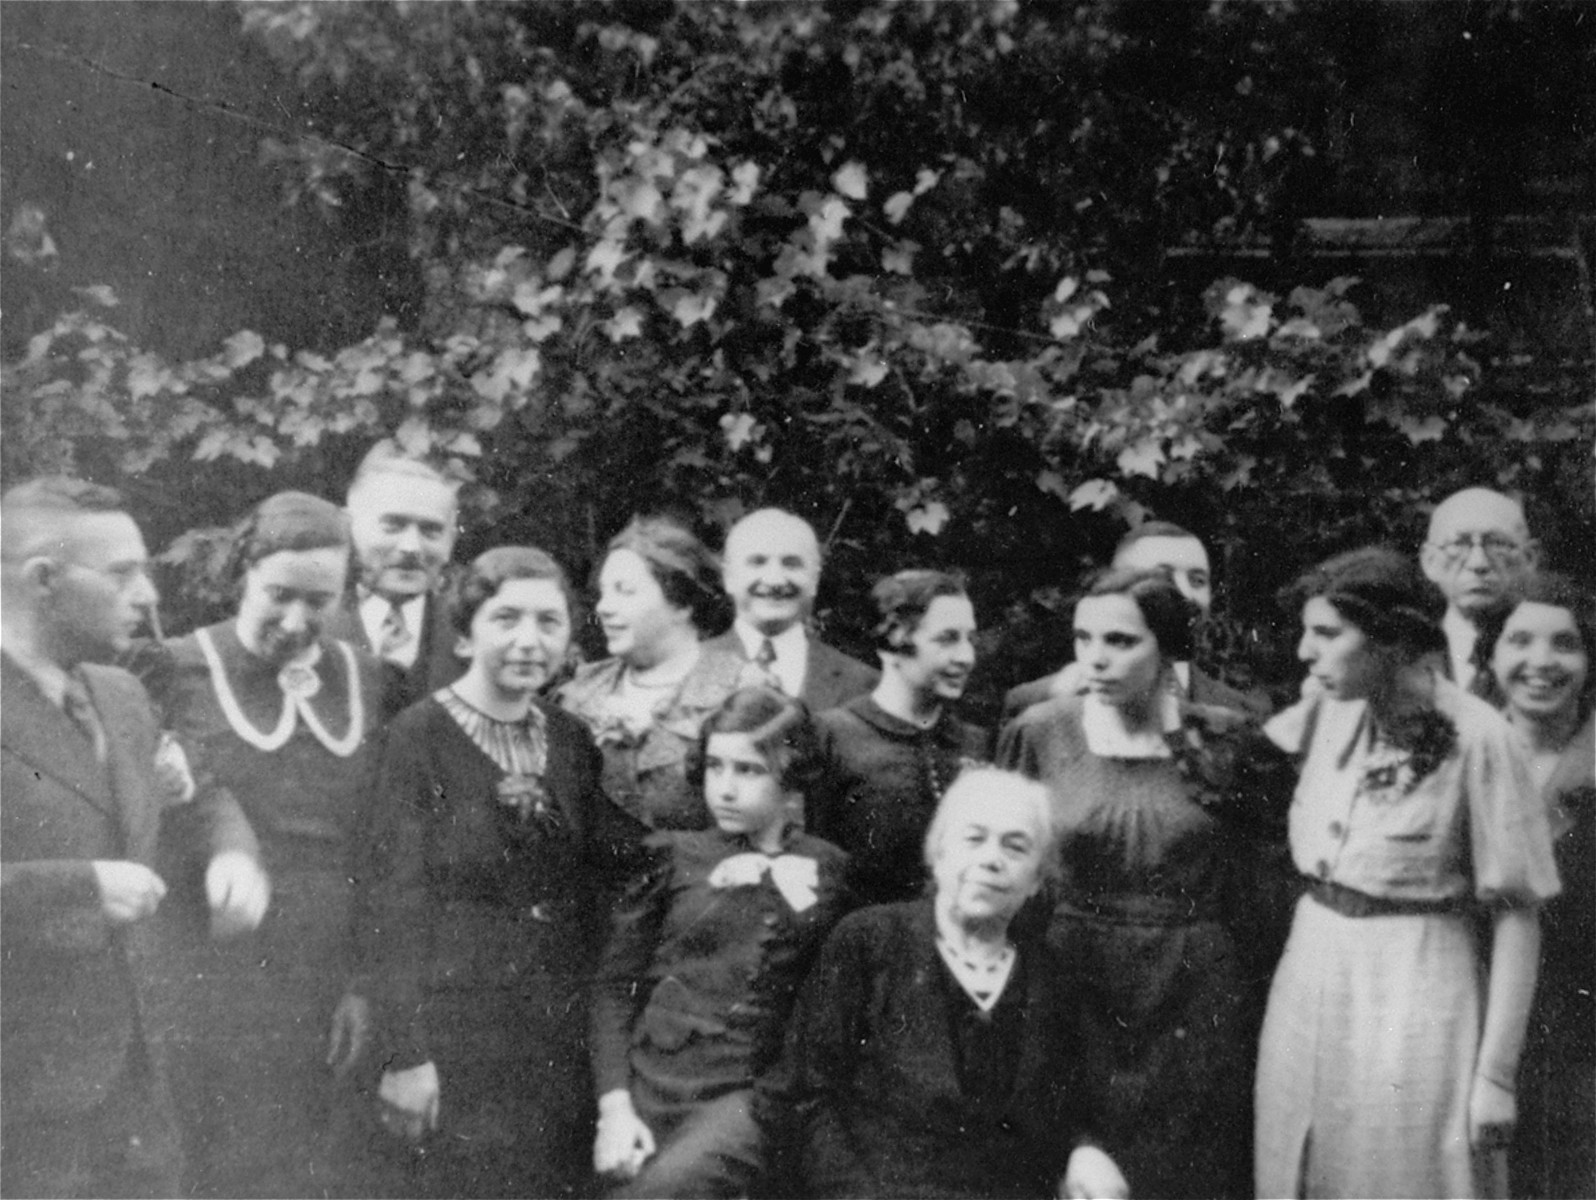 Group portrait of the Wachenheimer family taken on the 75th birthday of Lina Weissmann Wachenheimer.   Hedy Wachenheimer is seated next to her grandmother, Lina Weissmann Wachenheimer.